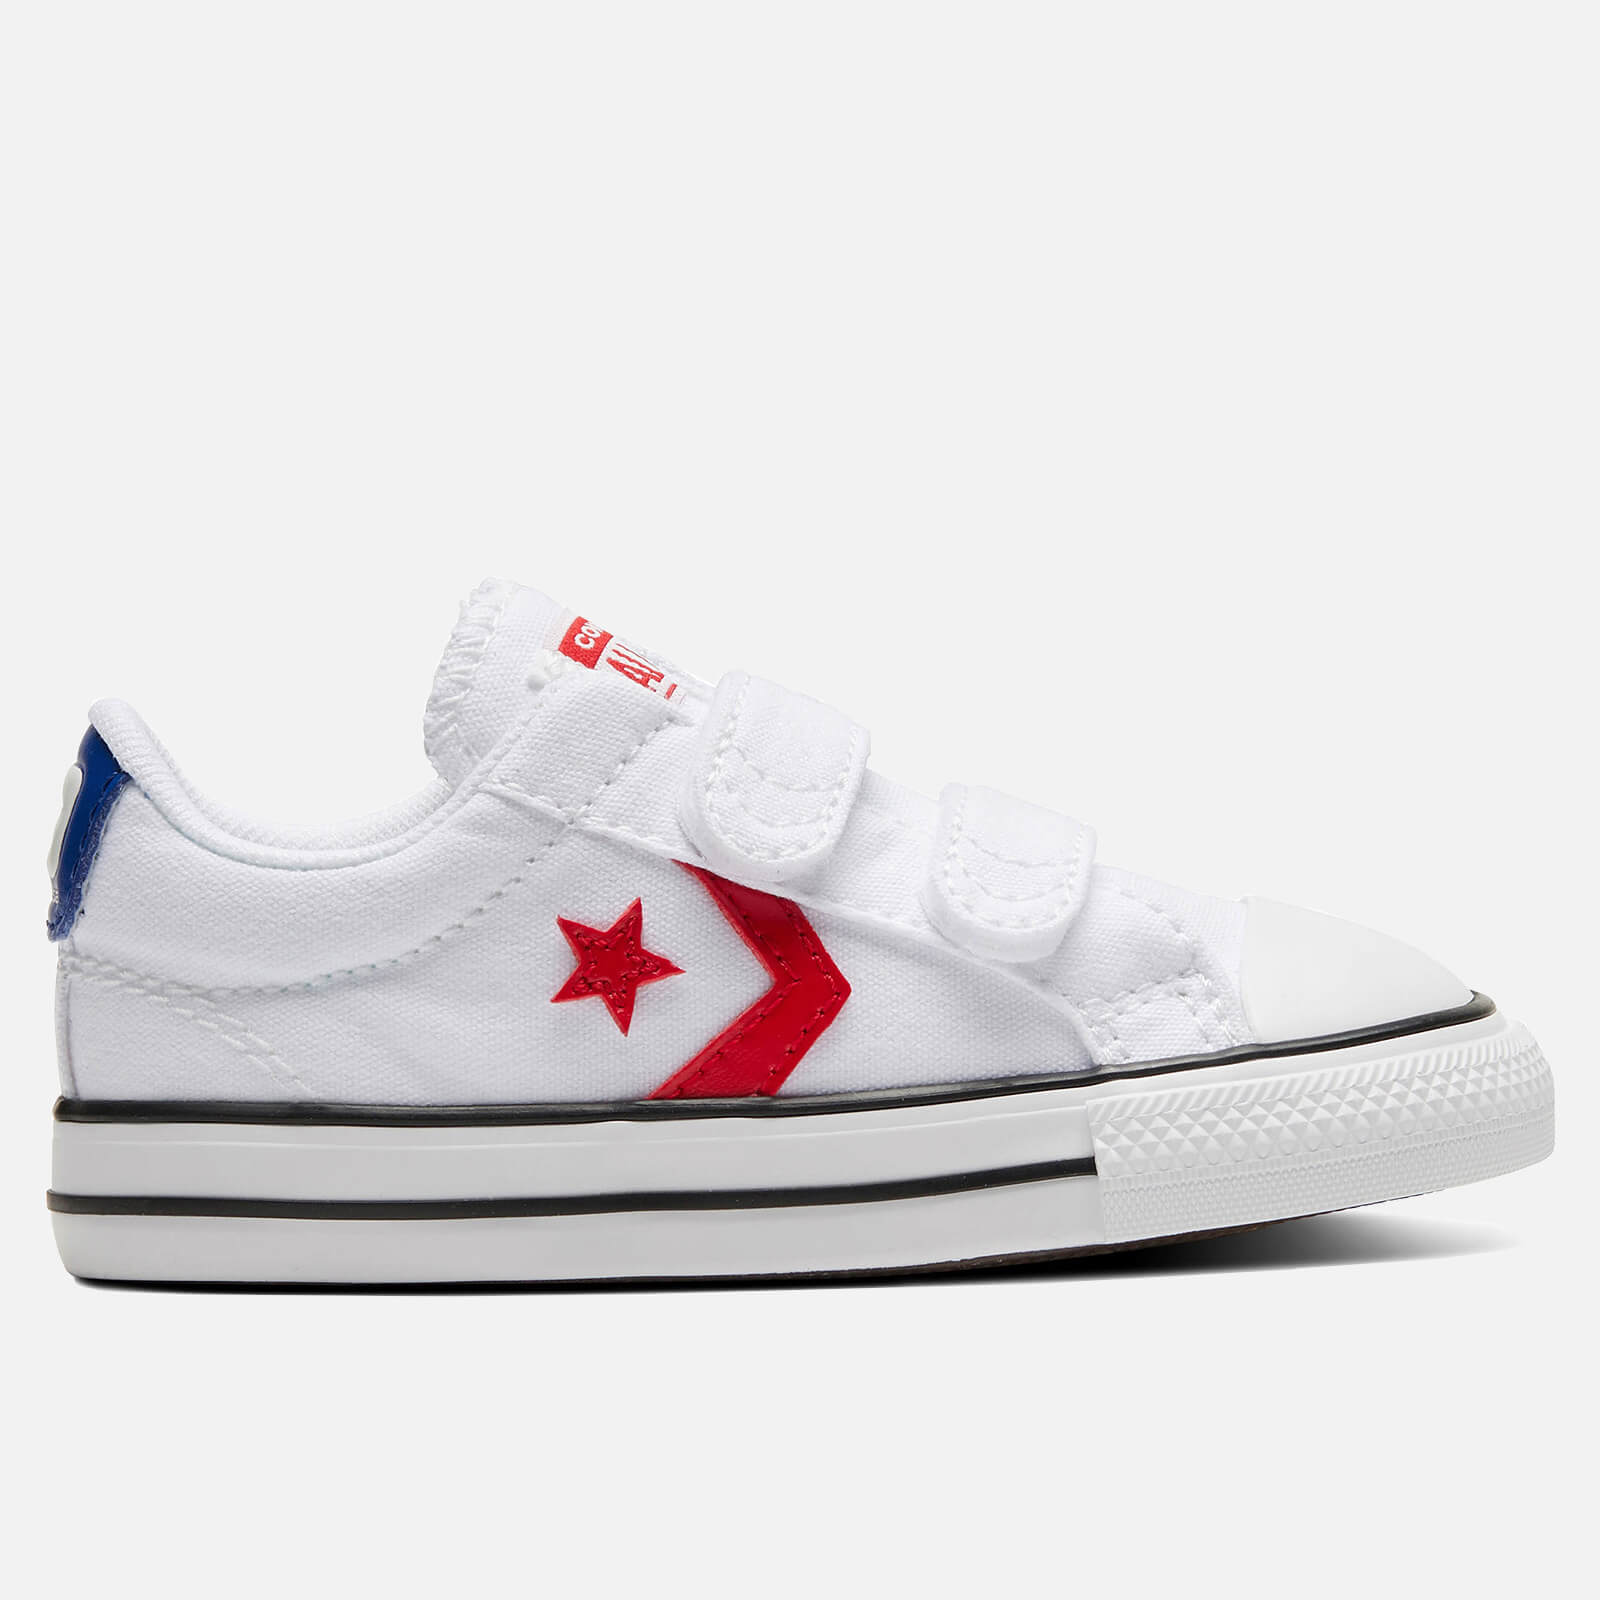 Converse Toddlers' Star Player Ox Velcro Trainers - White/University Red - UK 9 Kids